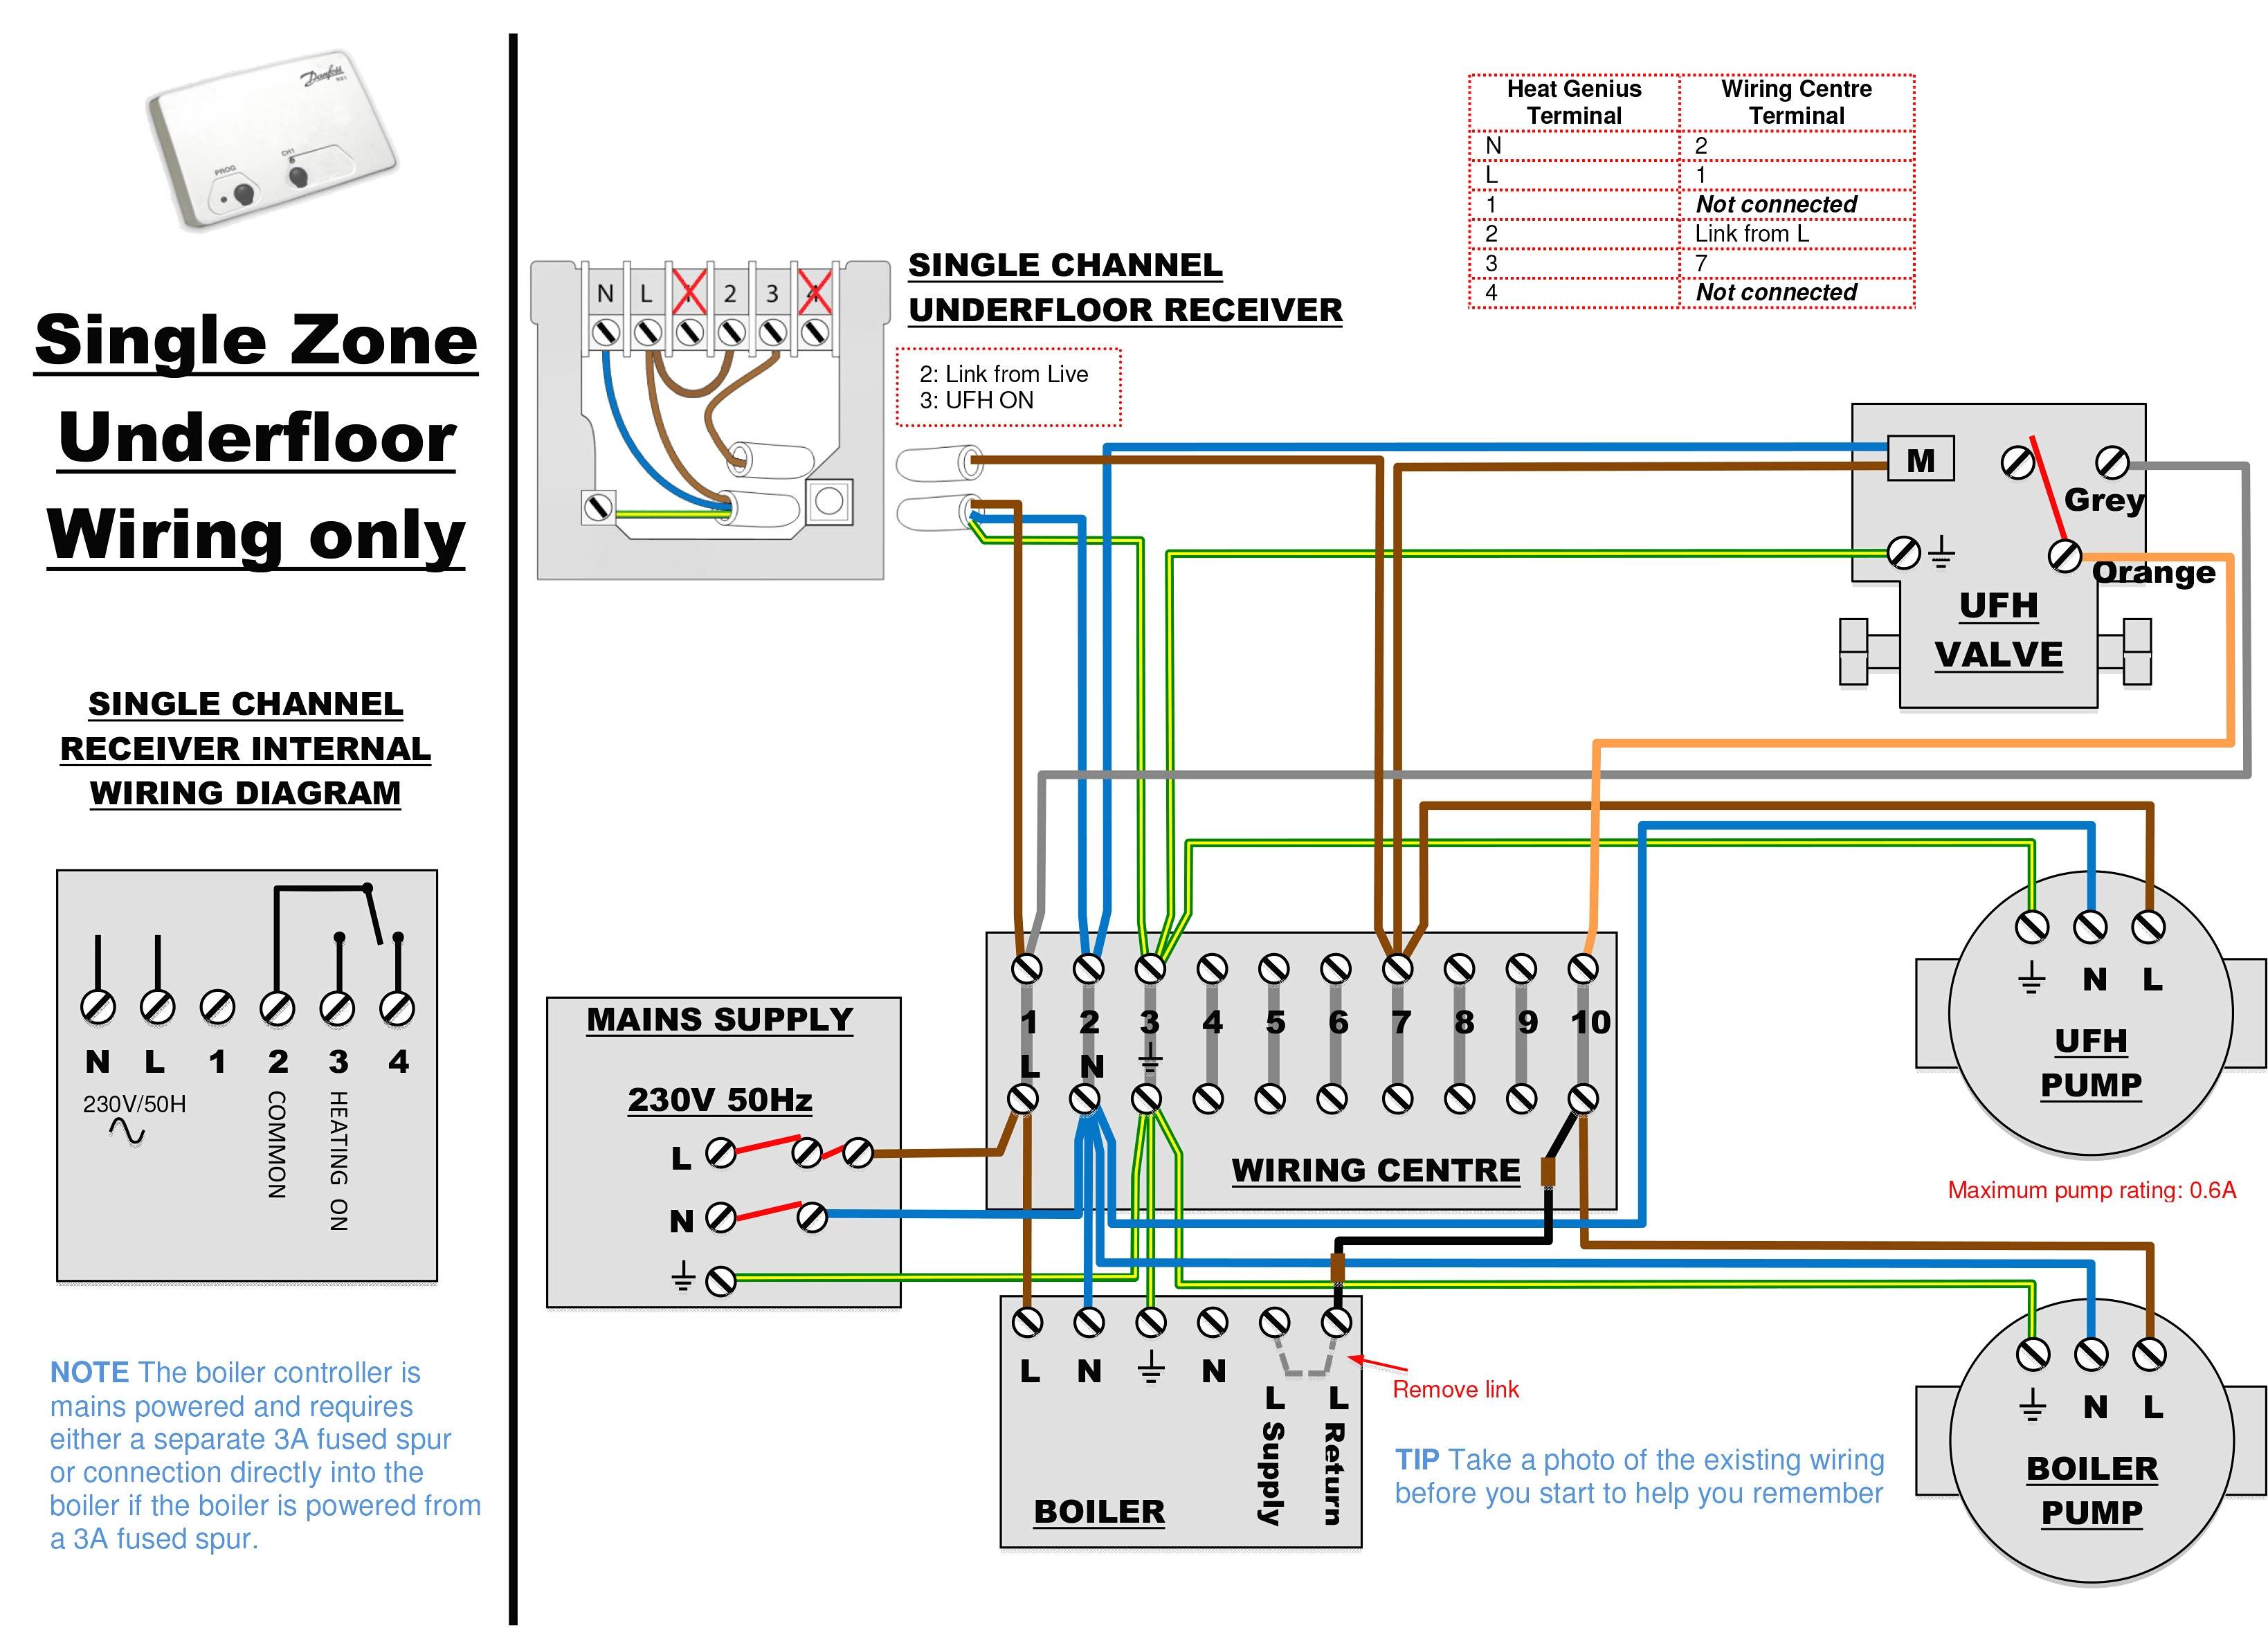 boiler wiring diagram Download-Wiring Diagrams for Central Heating Valid Hive thermostat Wiring Diagram Fresh Boiler Wiring Diagram for 18-n